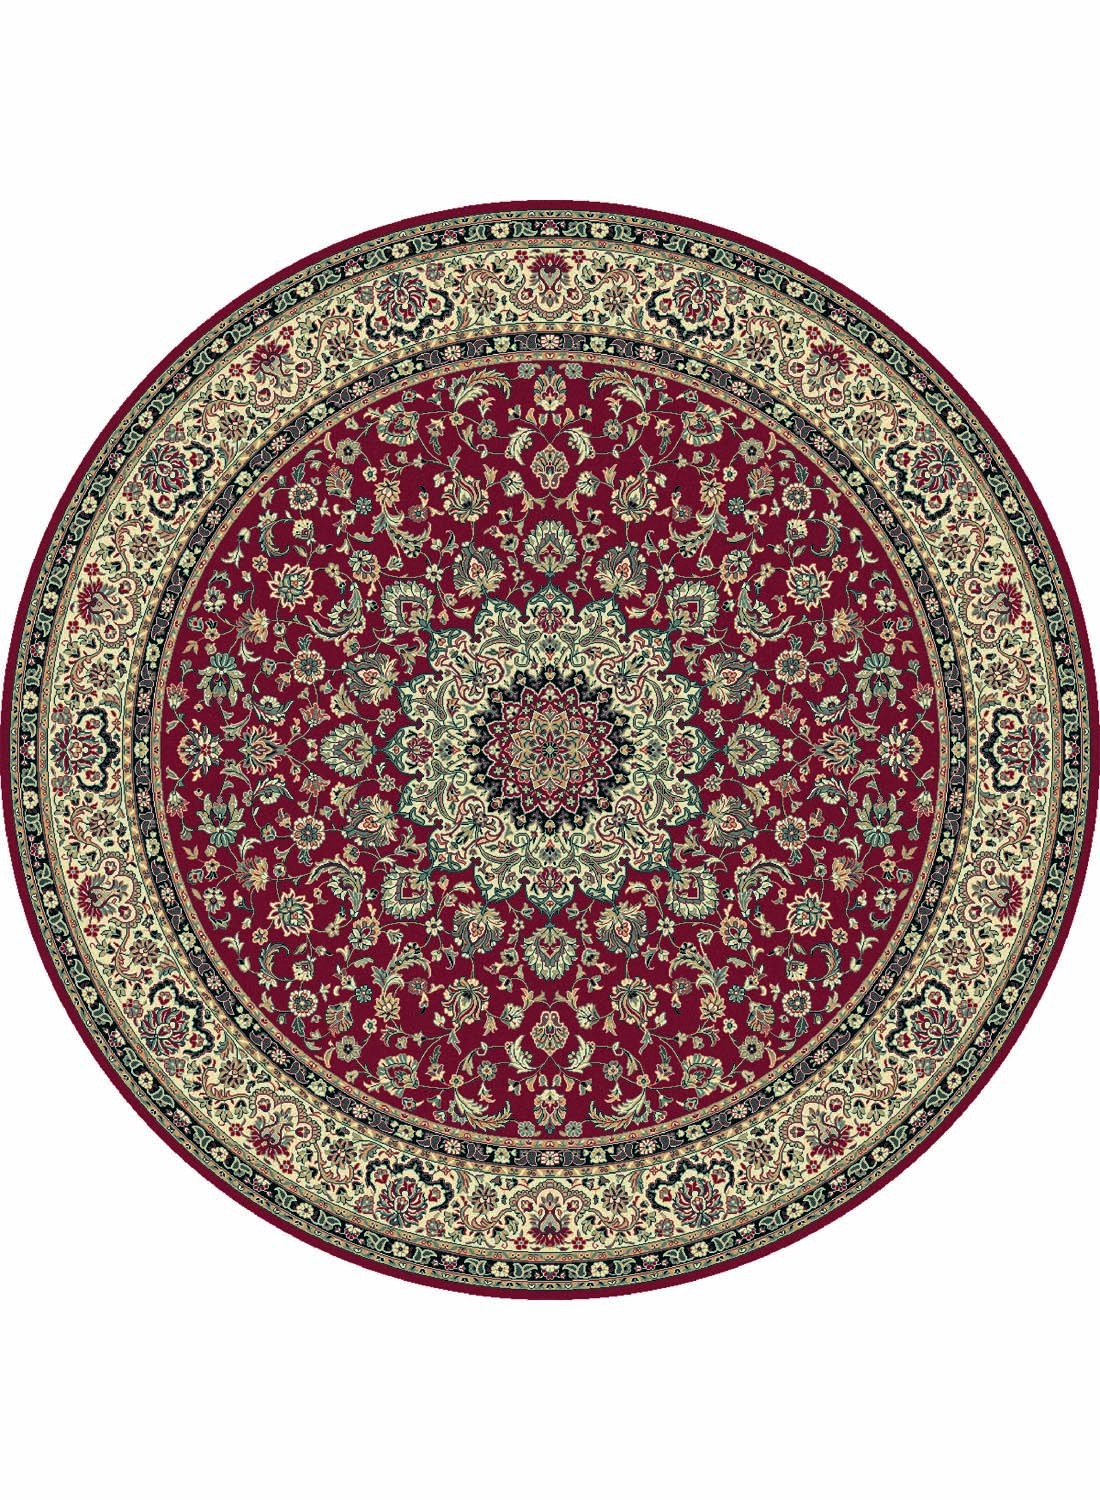 Tapis Rond Conforama Id Es De D Coration Int Rieure French Decor